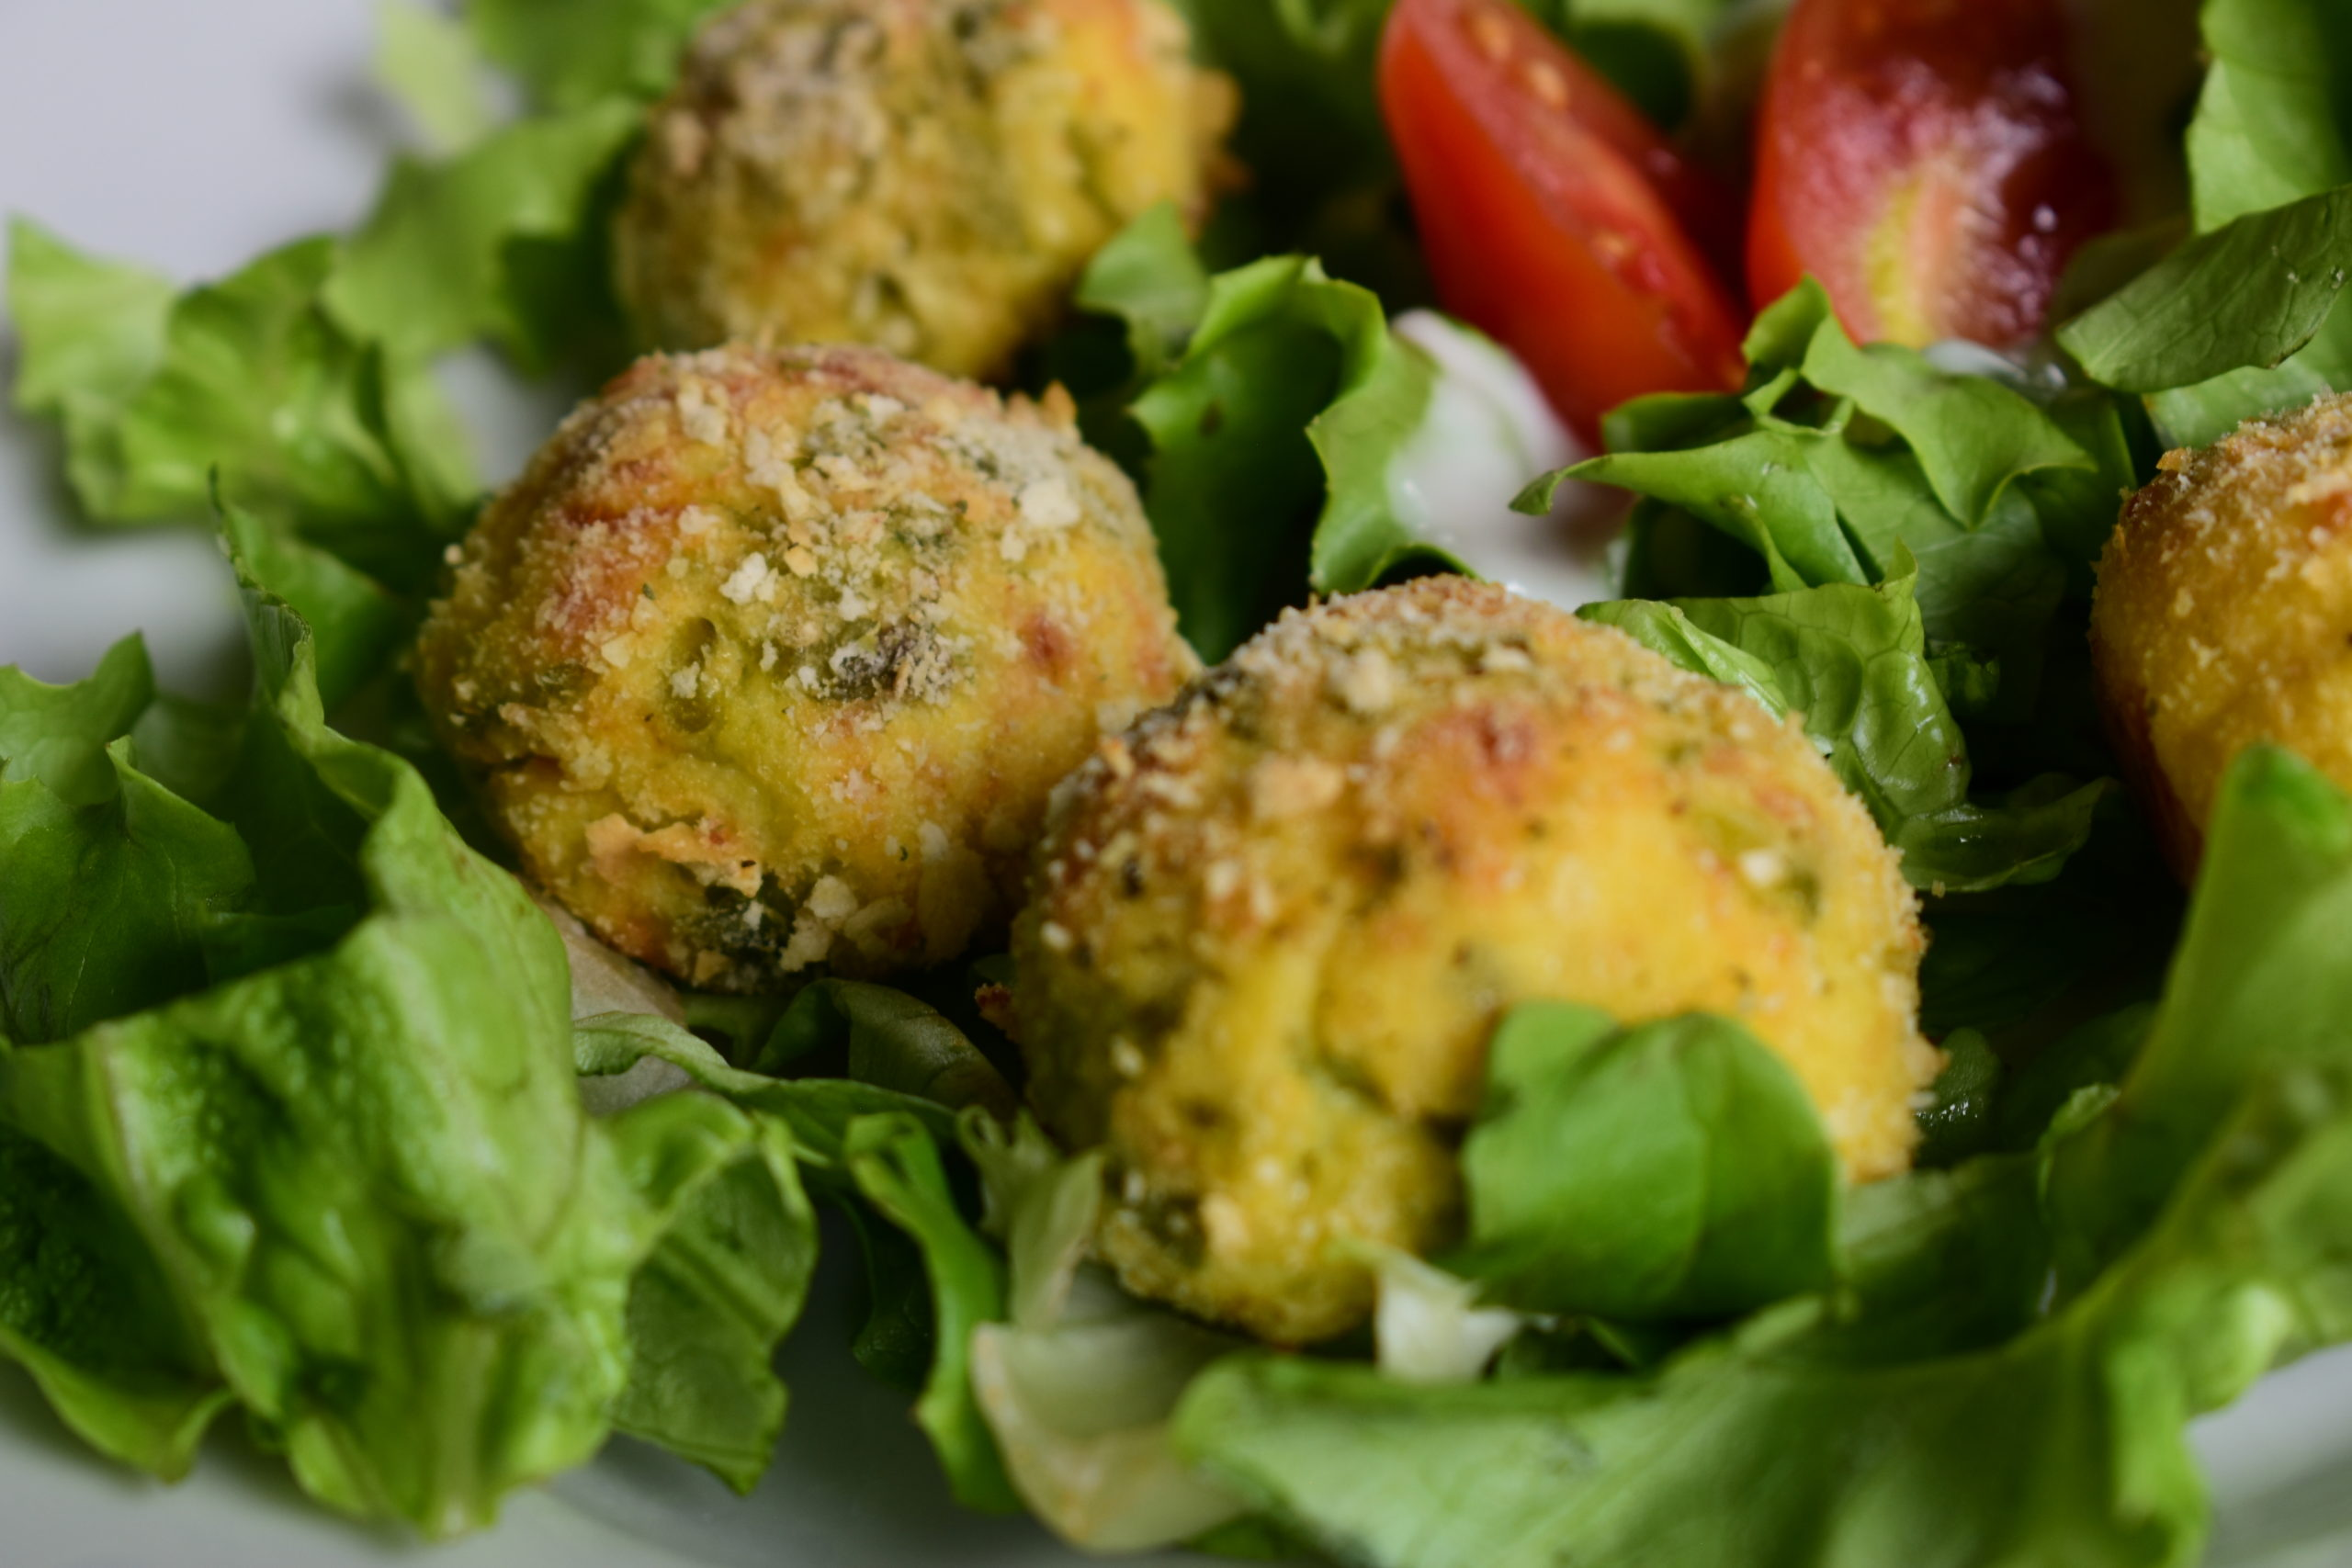 Croquetes of potatoes, ricotta and green beans